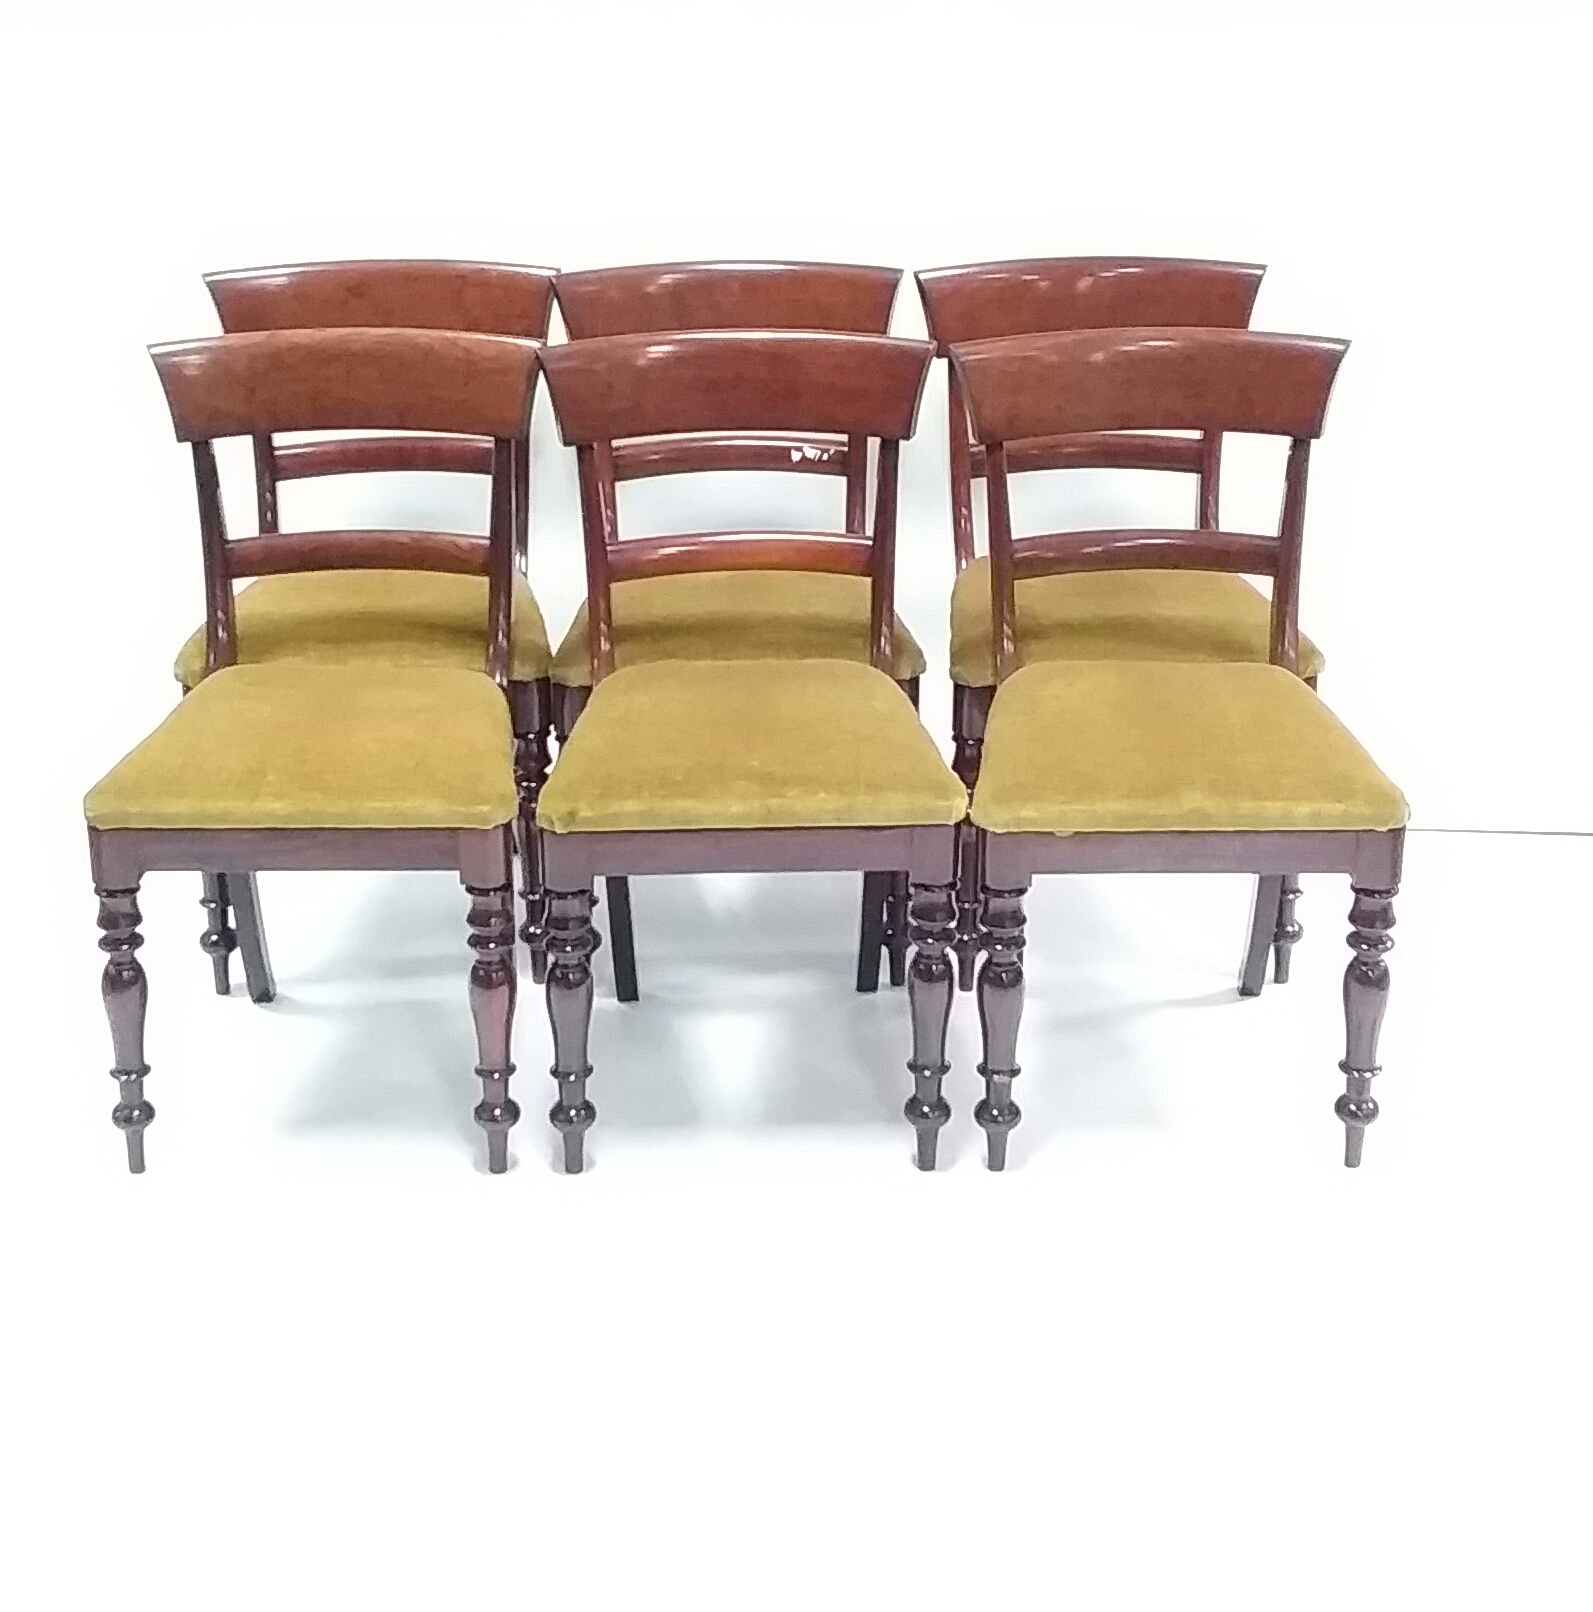 Antique victorian dining chairs - Antique_set_of_6_victorian_dining_chairs